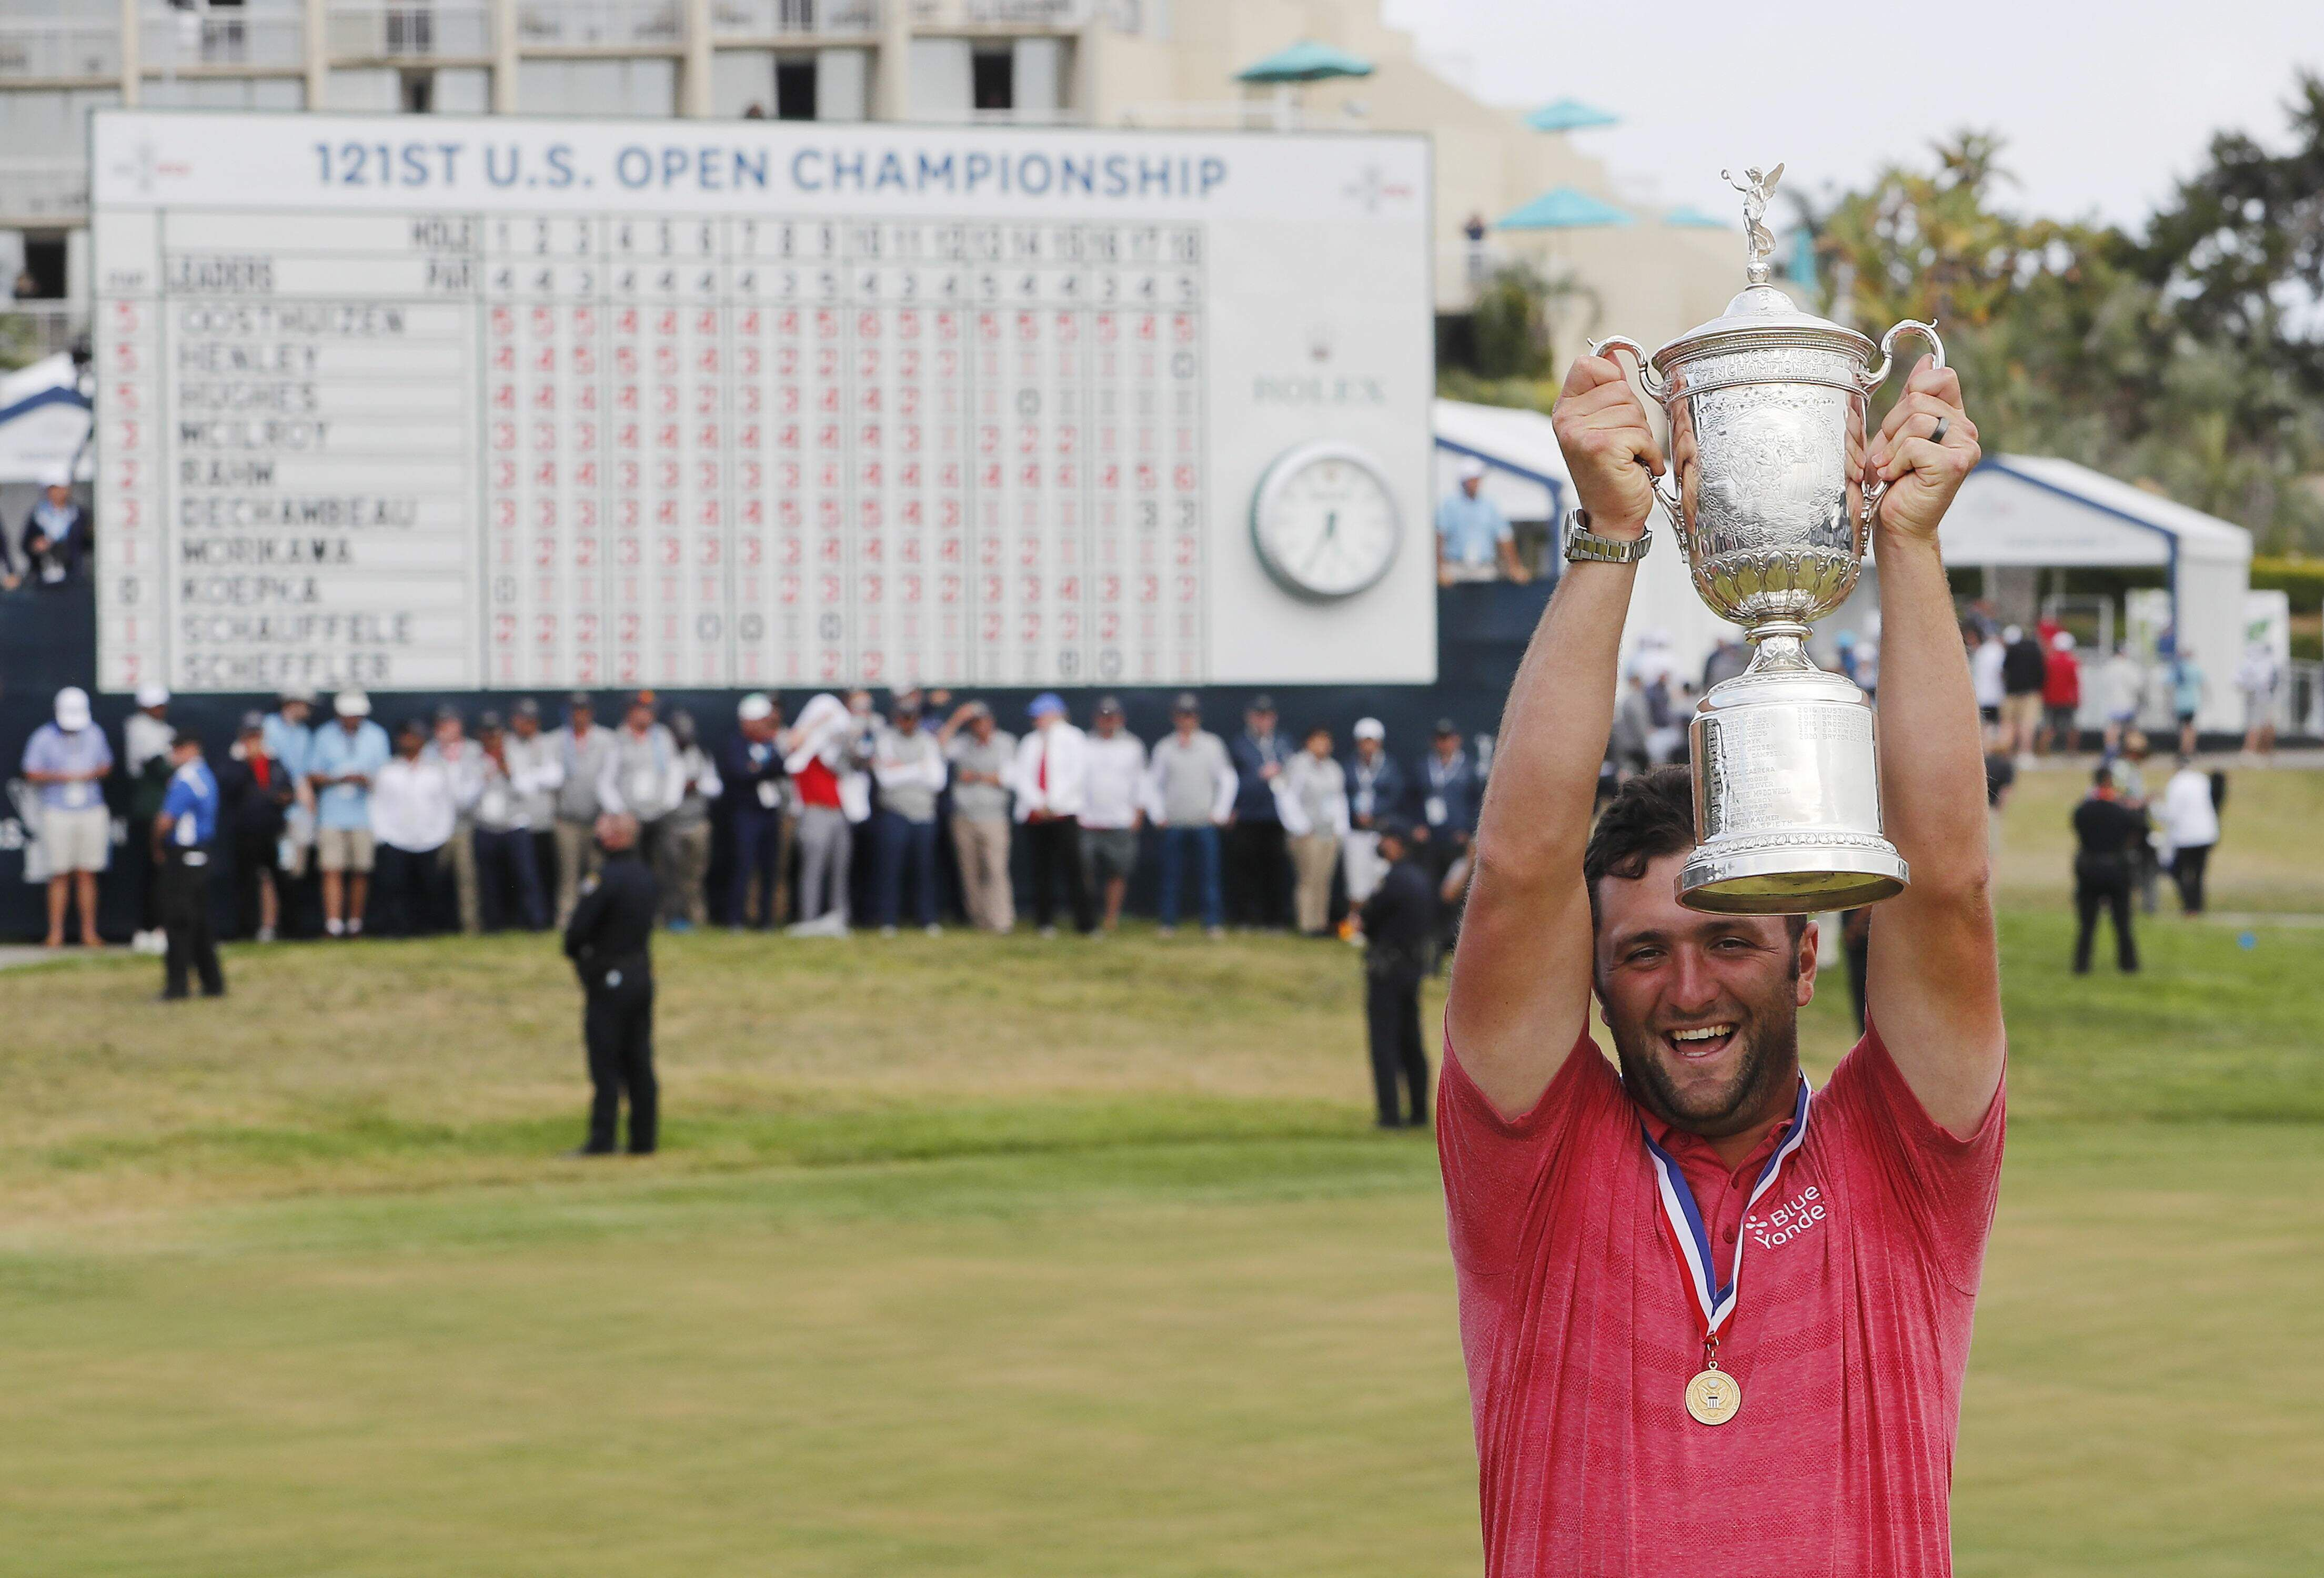 San Diego (United States), 20/06/2021.- Jon Rahm of Spain celebrates with the US Open Championship Trophy after winning the 2021 US Open golf tournament on the South Course of the Torrey Pines Golf Course in San Diego, California, USA, 20 June 2021. (Abierto, España, Estados Unidos) EFE/EPA/ERIK S. LESSER